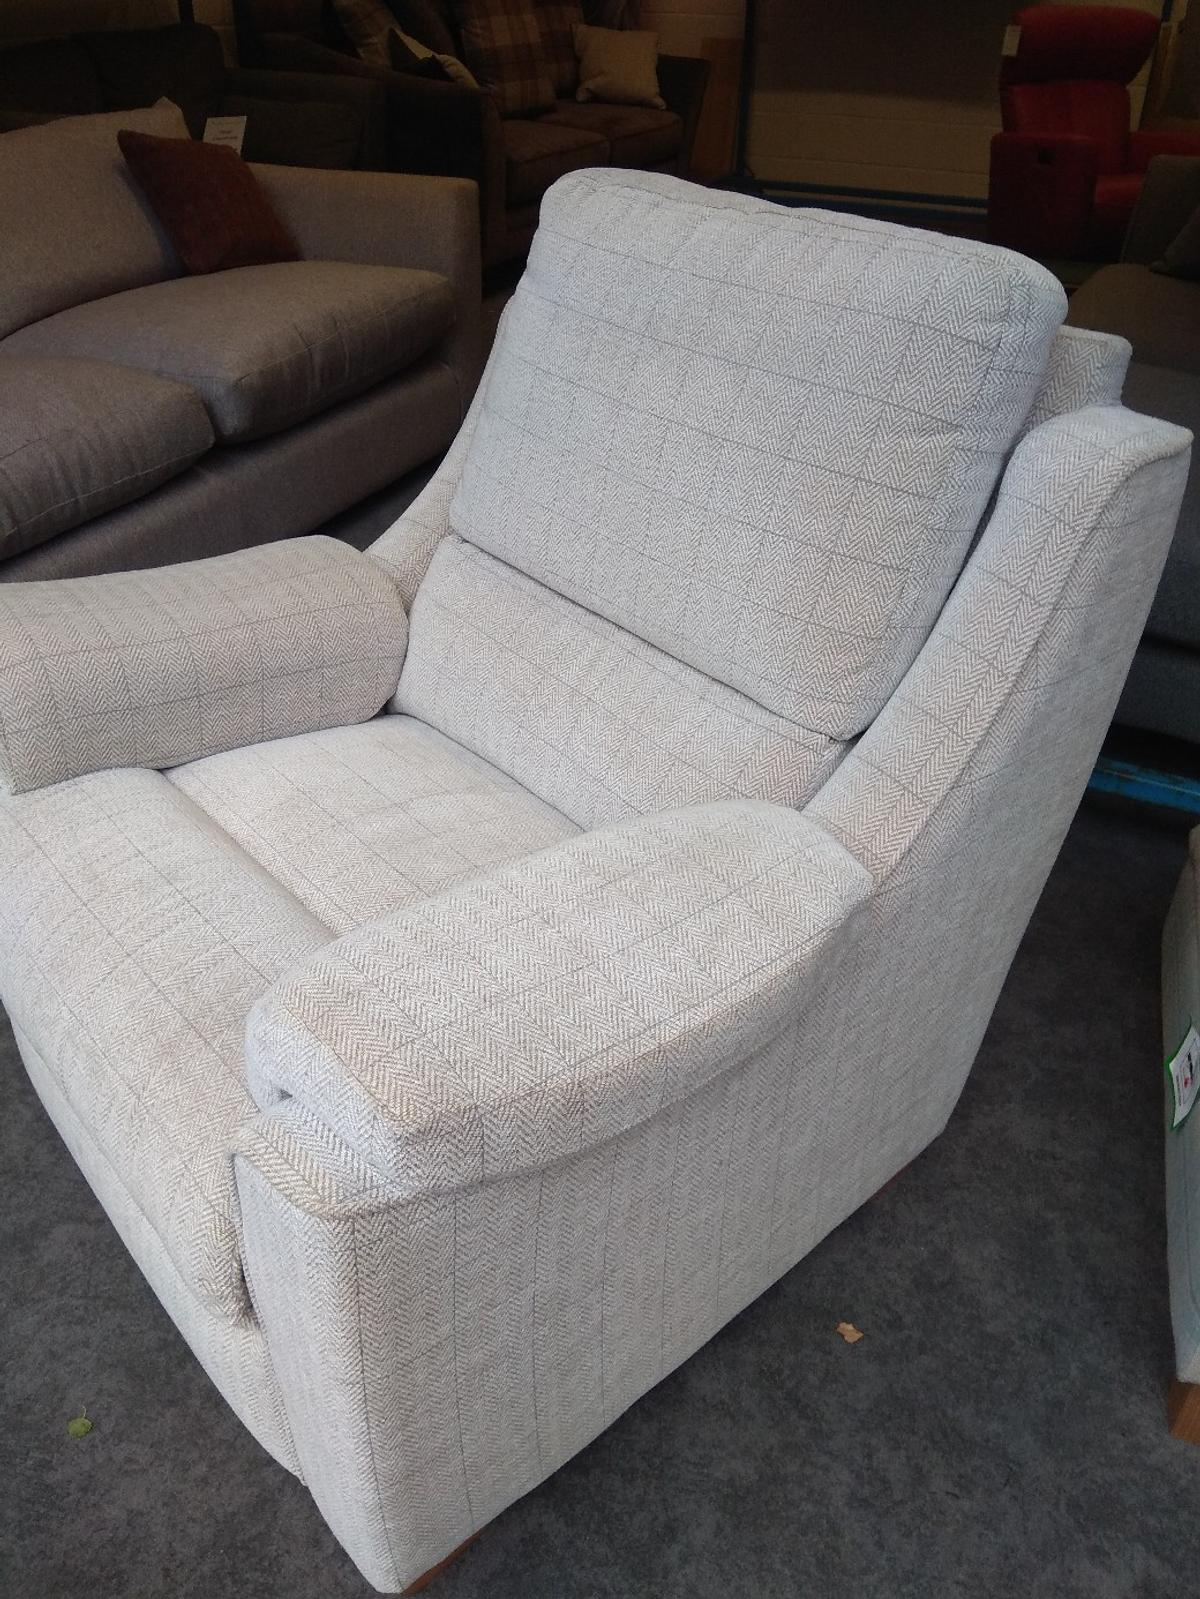 Astounding Parker Knoll Albany Chair In Ng21 Sherwood For 175 00 For Machost Co Dining Chair Design Ideas Machostcouk